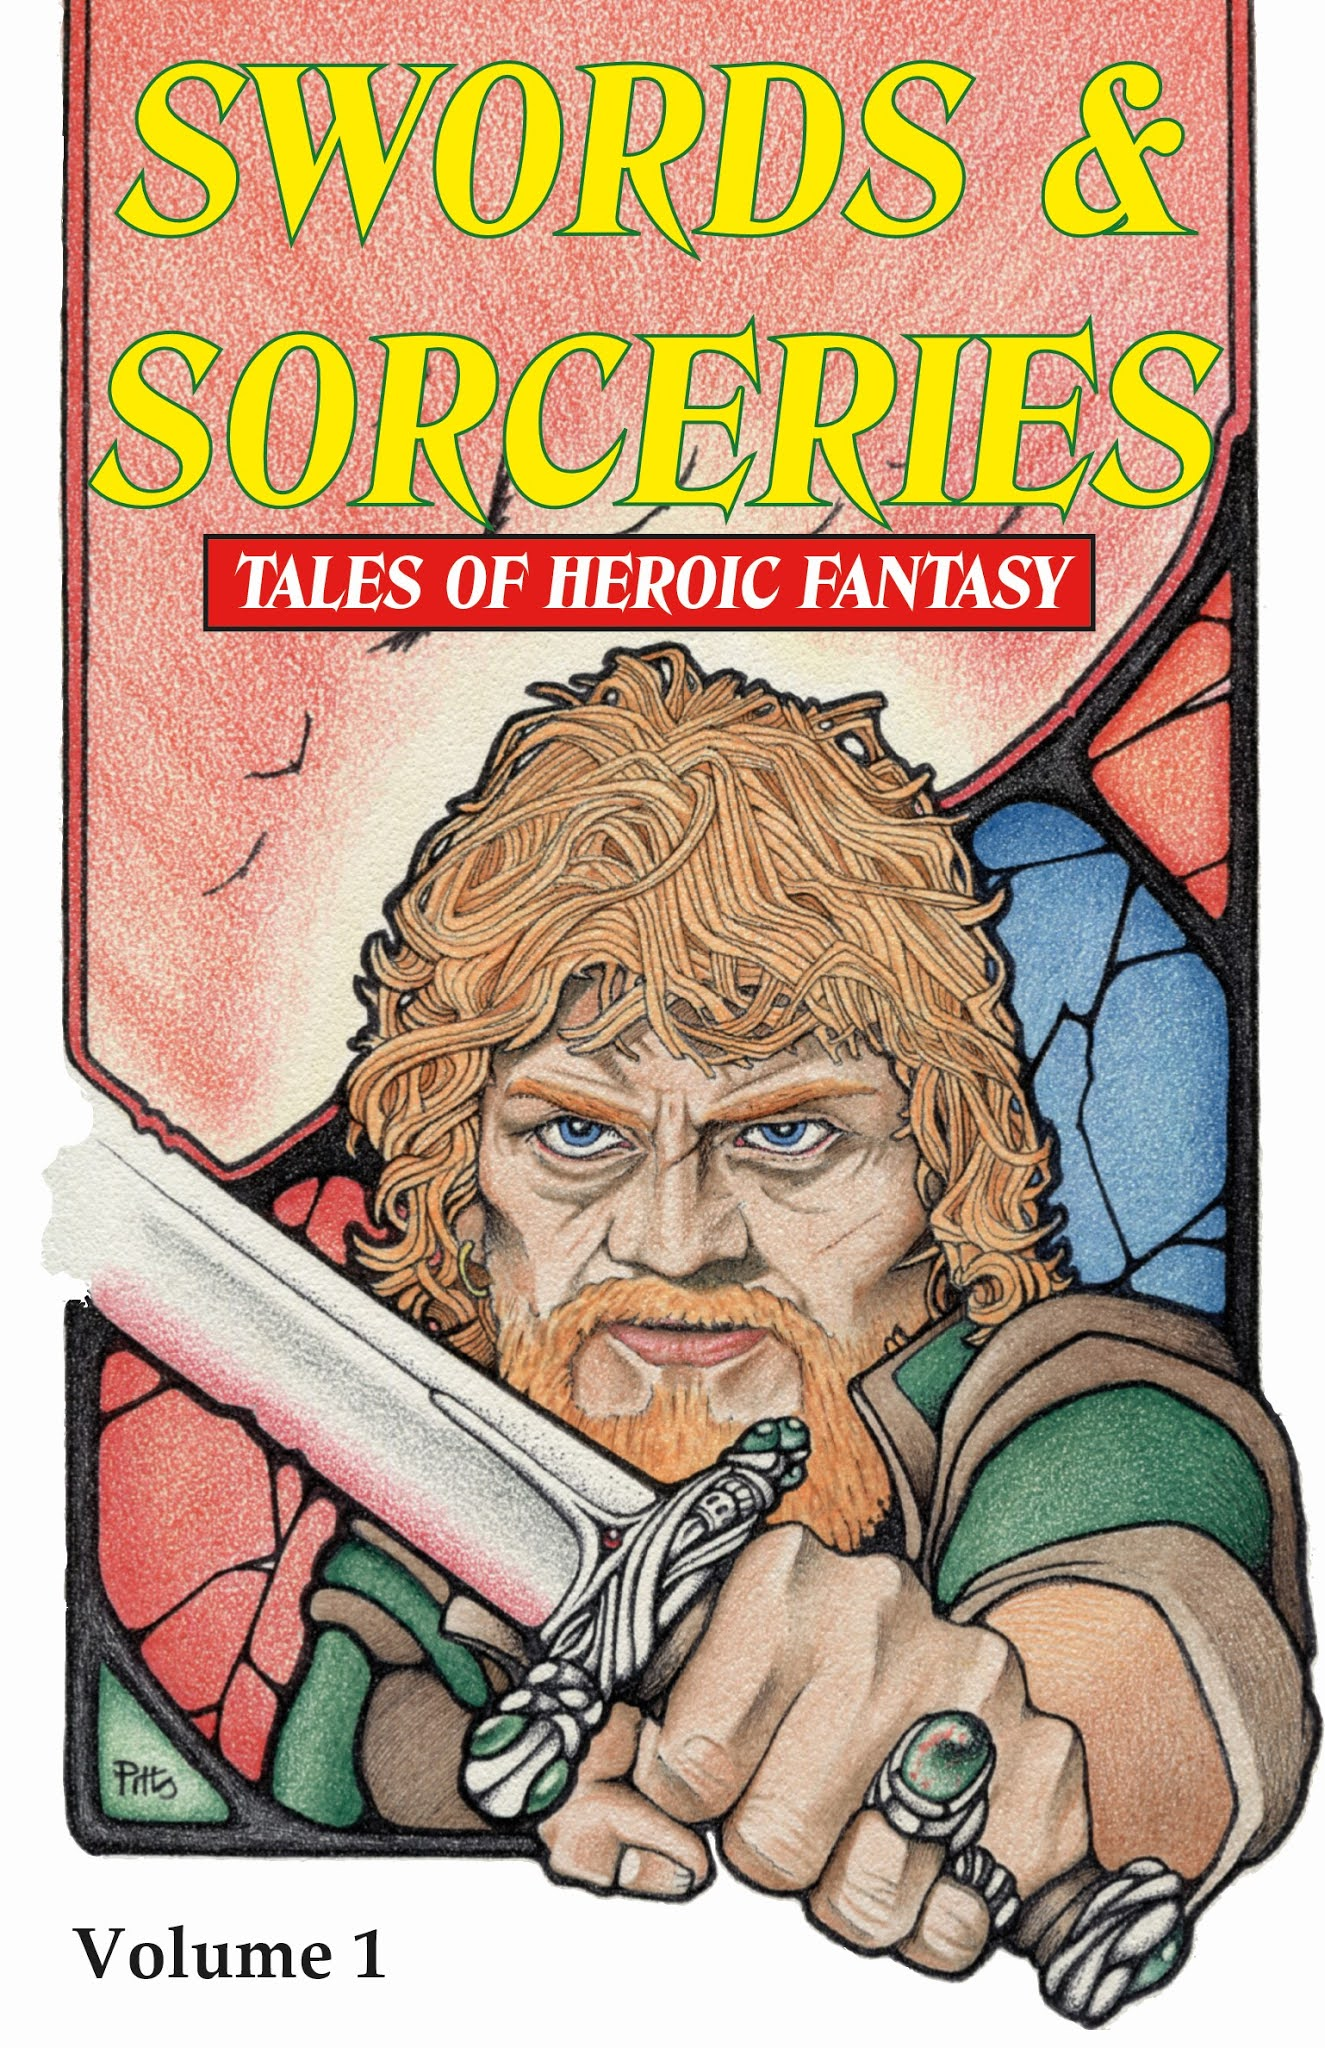 Swords & Sorceries: Tales of Heroic Fantasy Volume 1